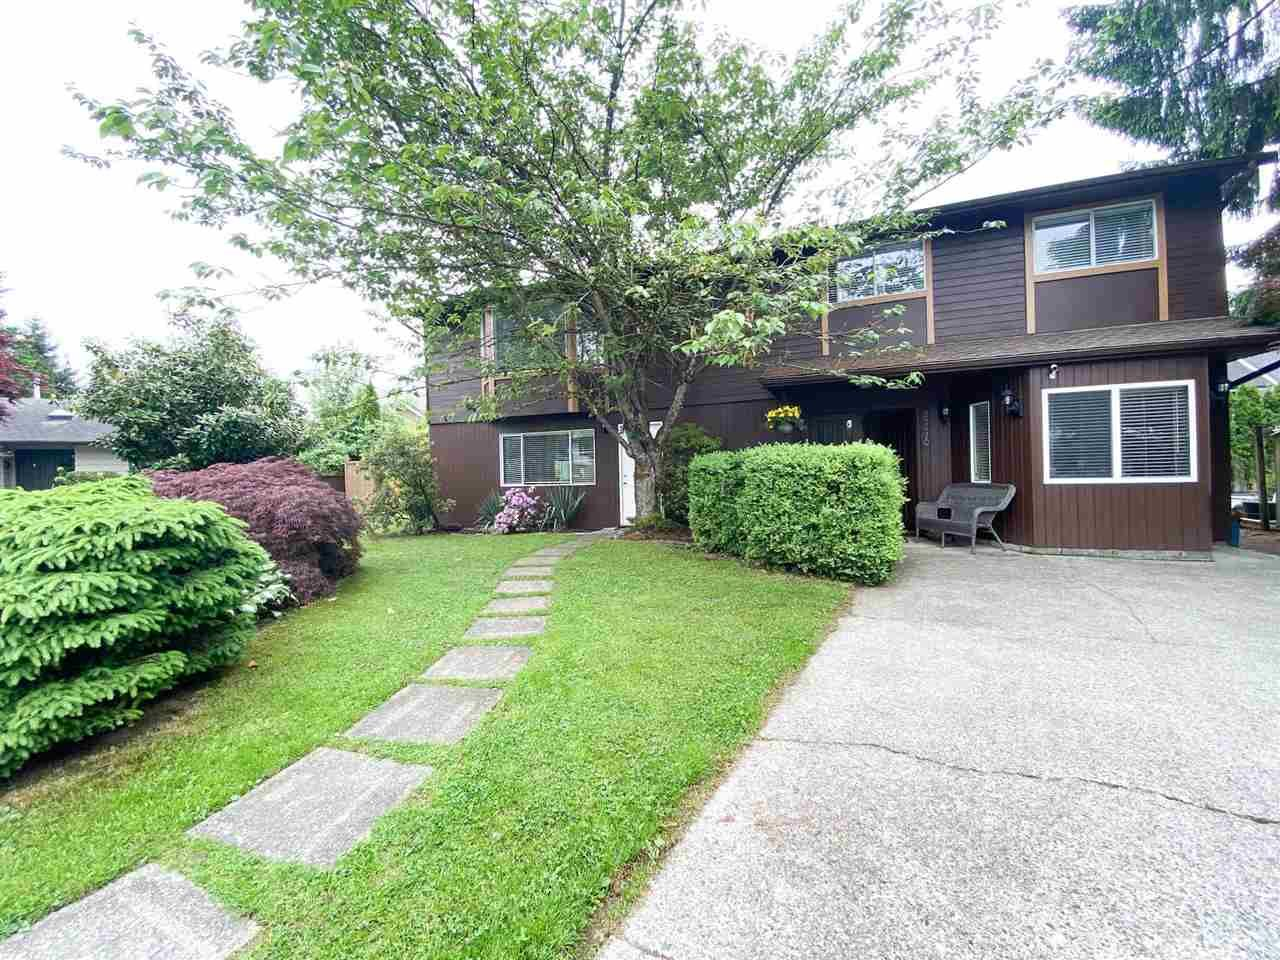 Main Photo: 22970 GILLEY Avenue in Maple Ridge: East Central House for sale : MLS®# R2585673